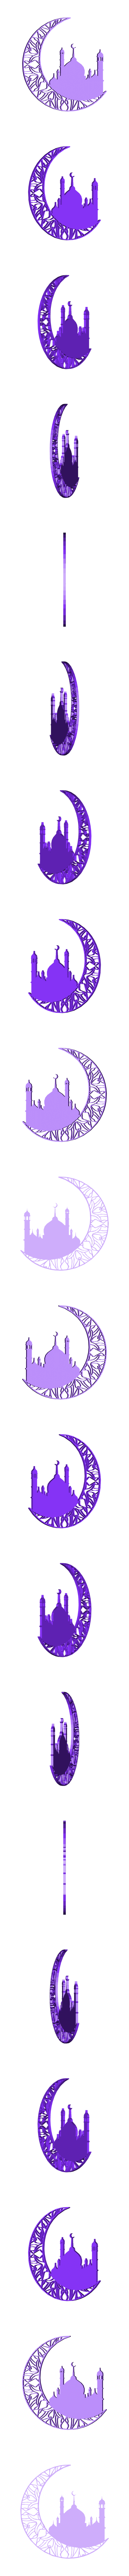 Ramadan_moon.stl Download free STL file Ramadan Moon • 3D printable template, YEHIA